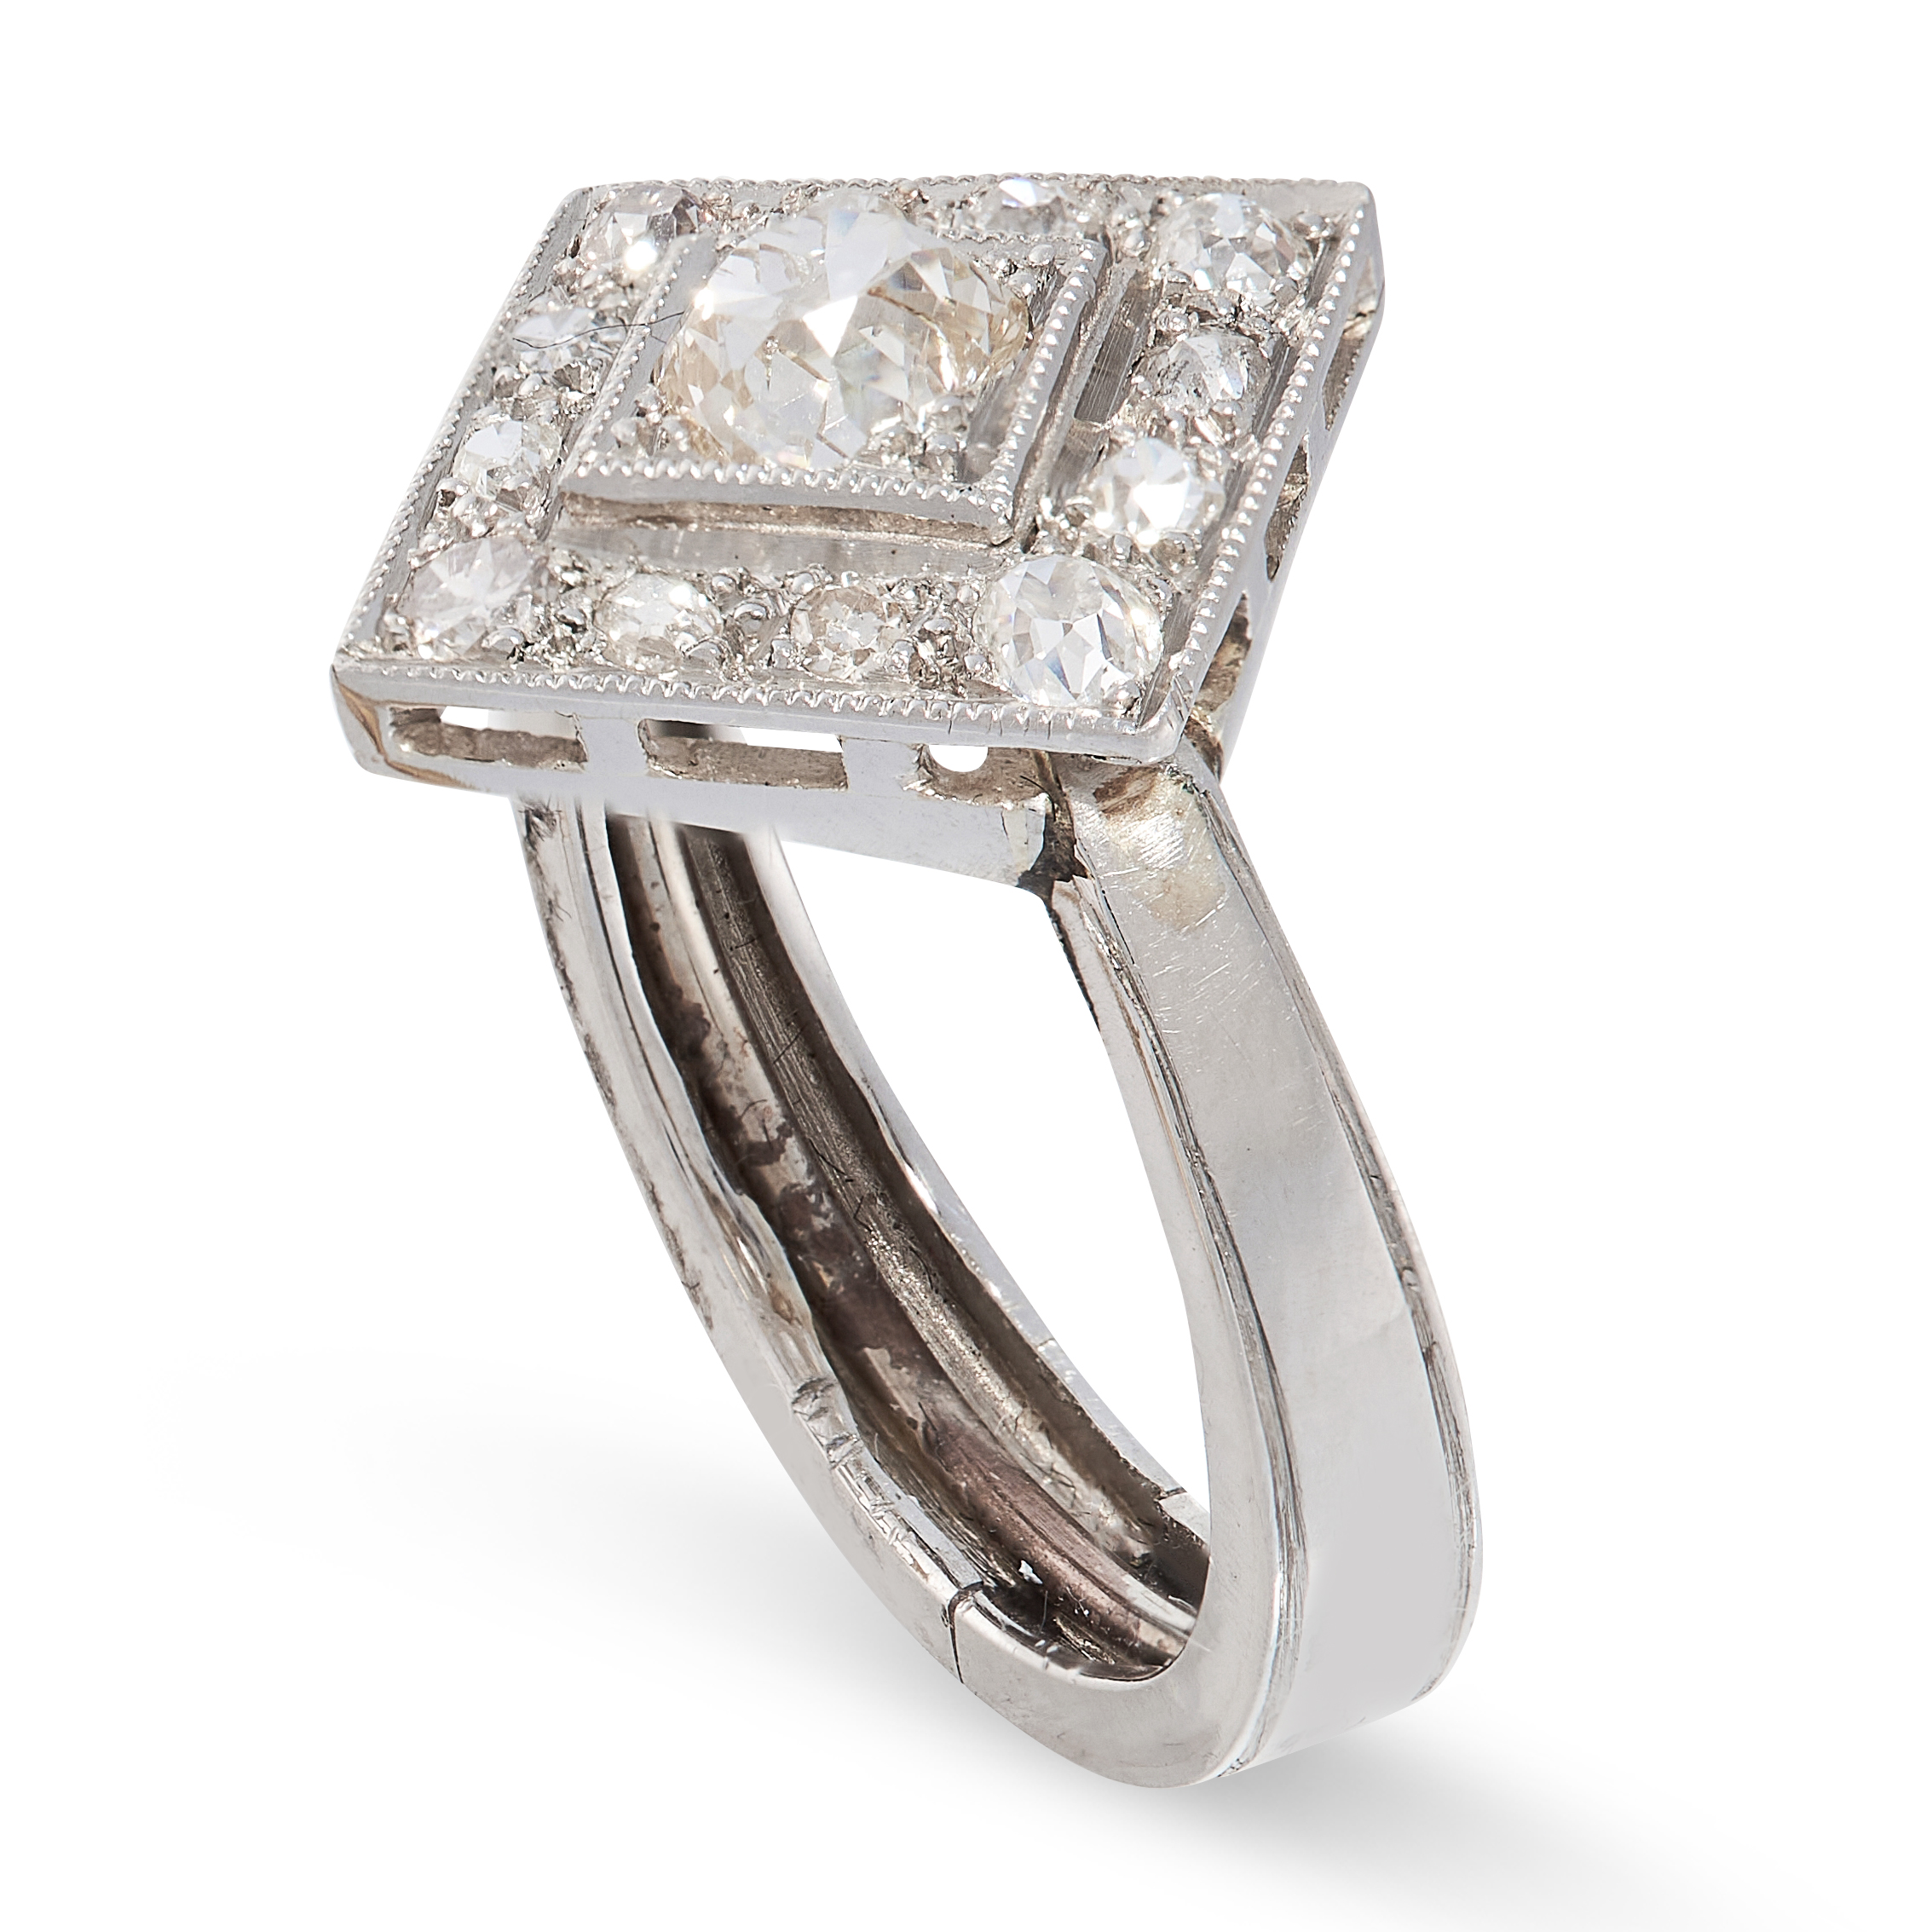 A DIAMOND DRESS RING the square face set with a central old cut diamond of 0.56 carats, within a - Image 2 of 2